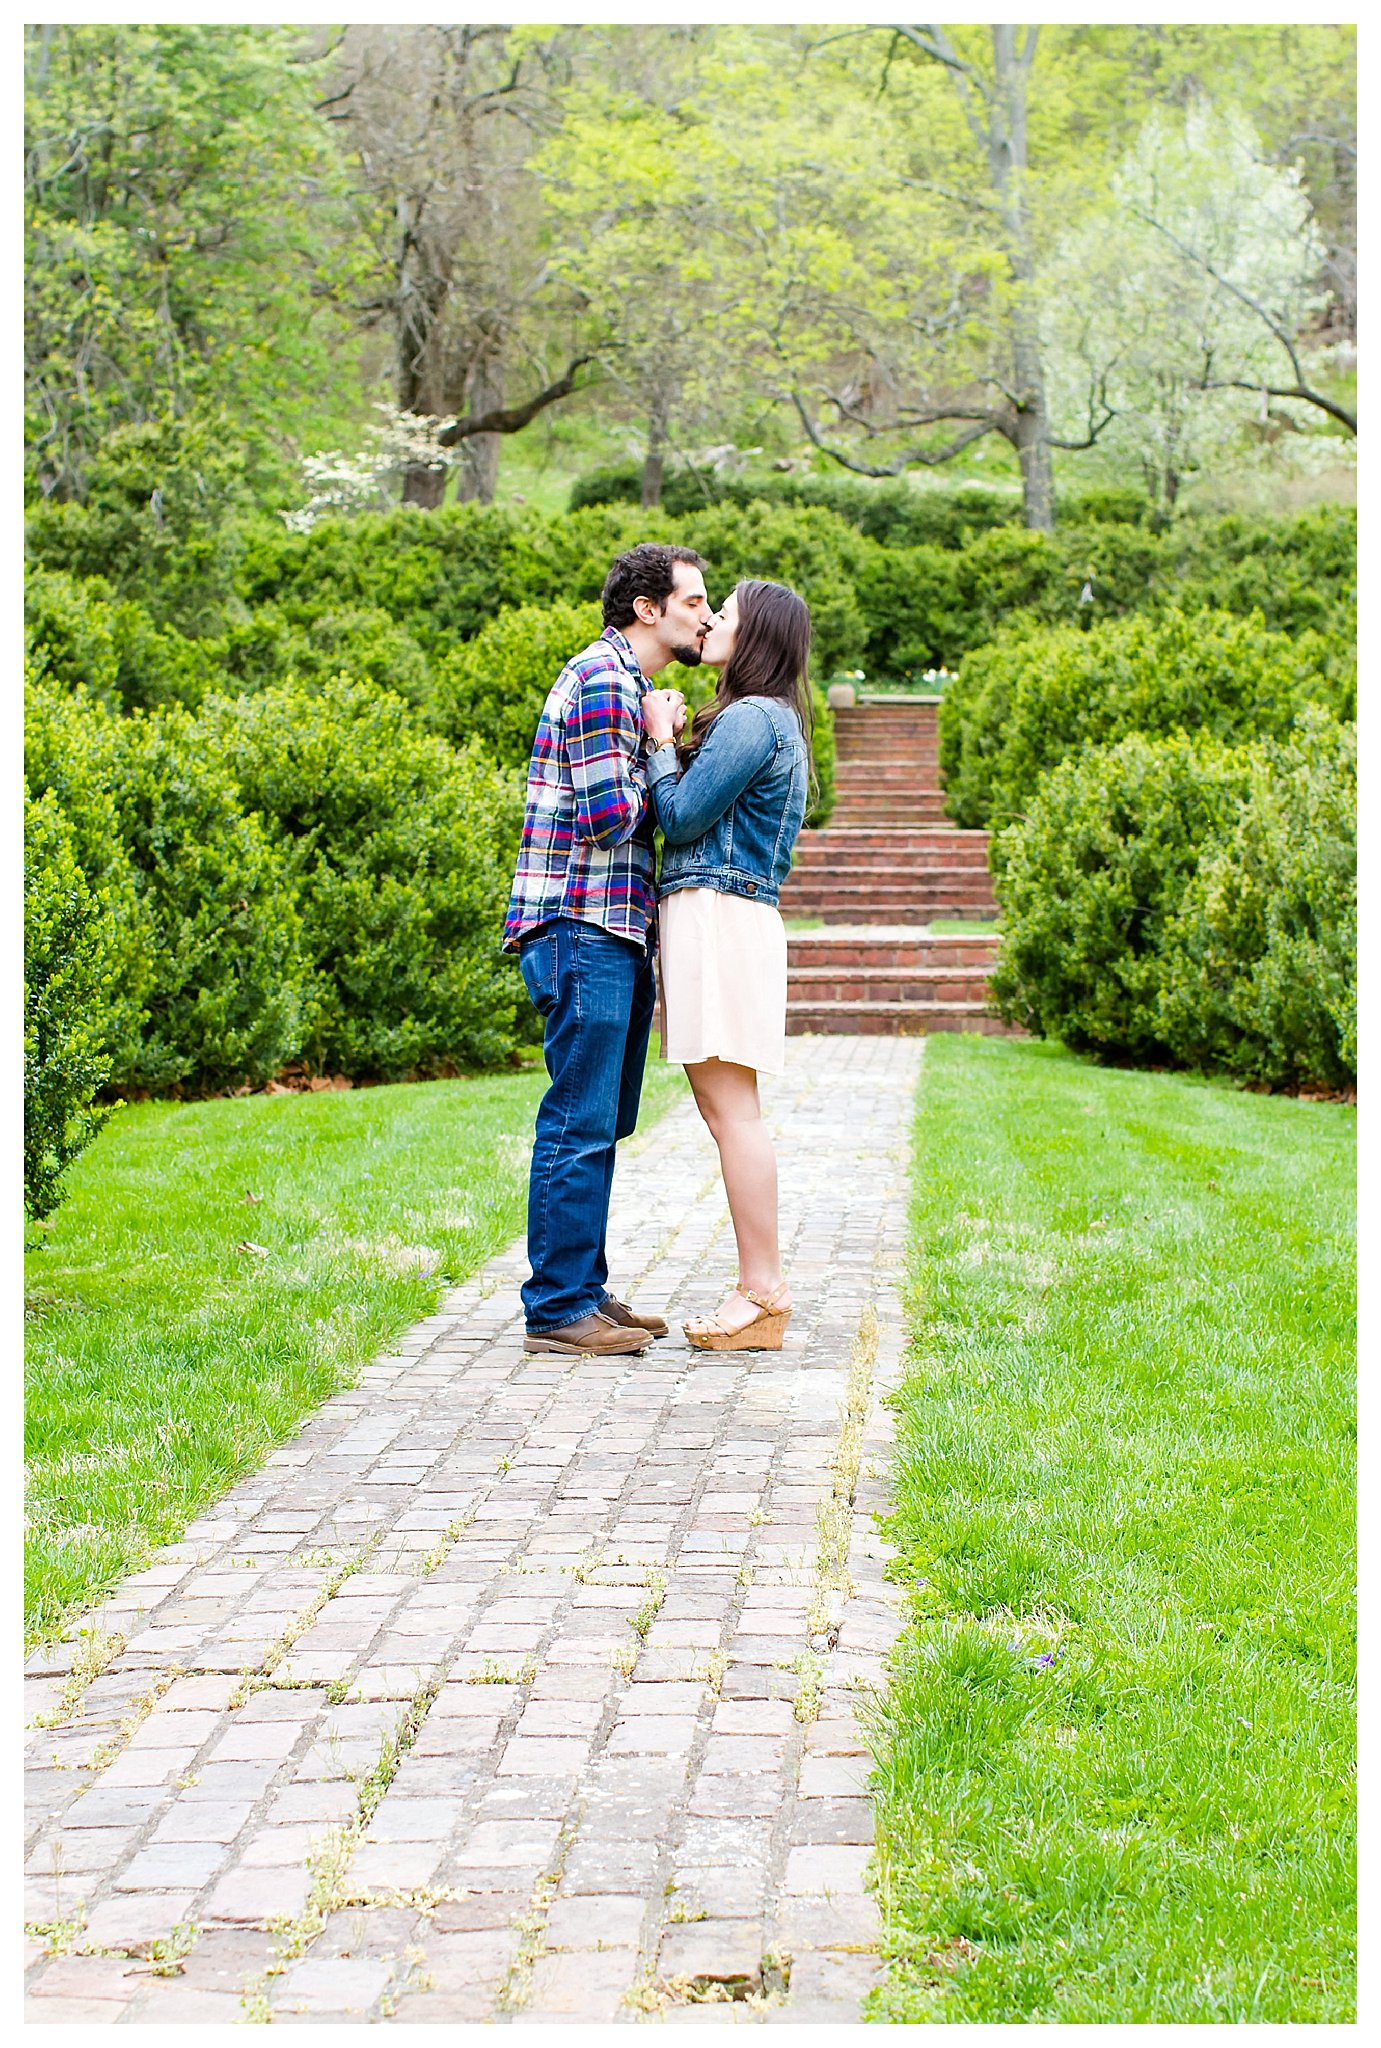 Morven Park Engagement | Andrea Rodway Photography